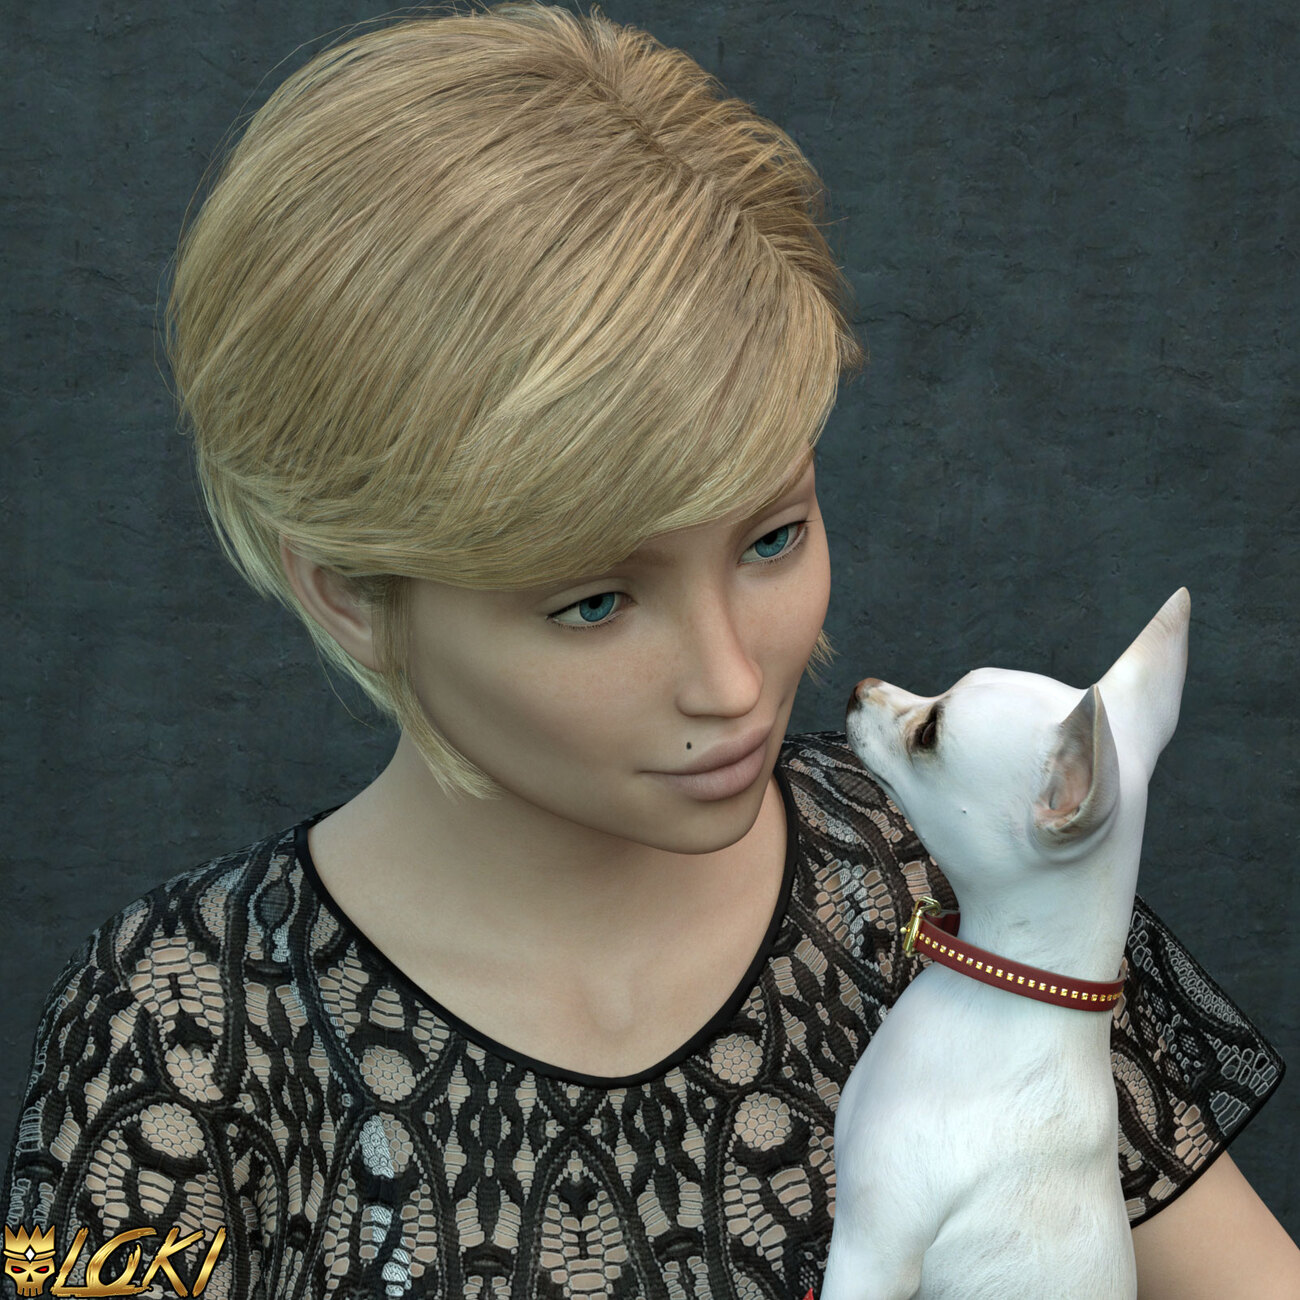 Chloe and her pupper by 3DLoki